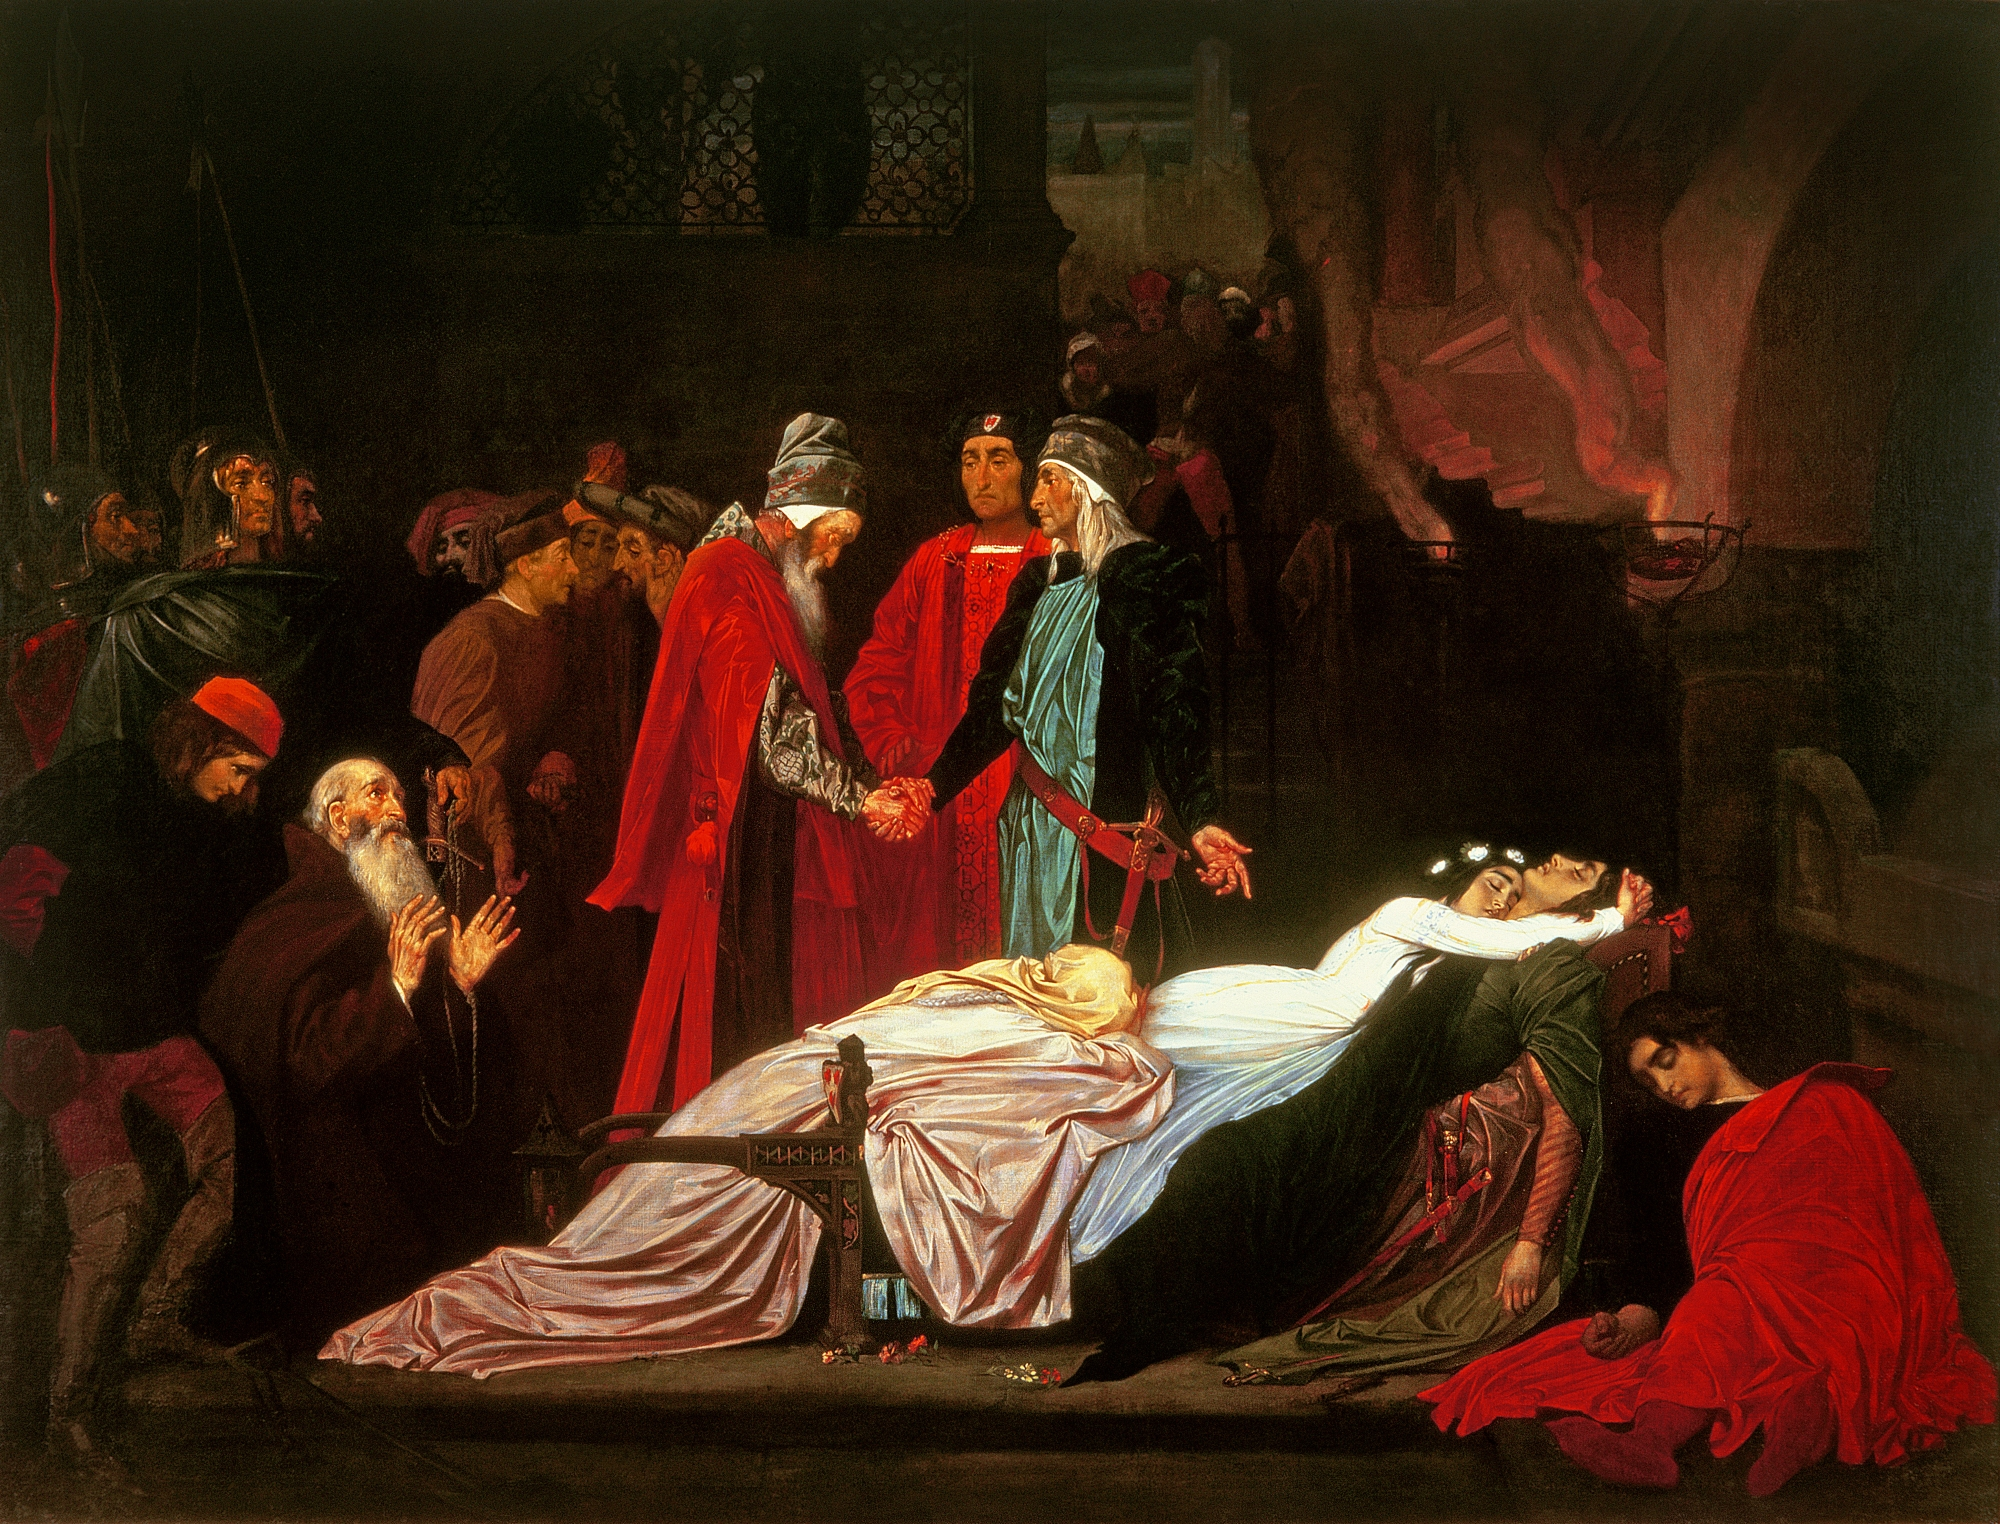 http://artreproductionsmasterpiece.com/blog/wp-content/uploads/2012/04/lord-frederic-leighton-dead-bodies-of-romeo-and-juliet.jpg